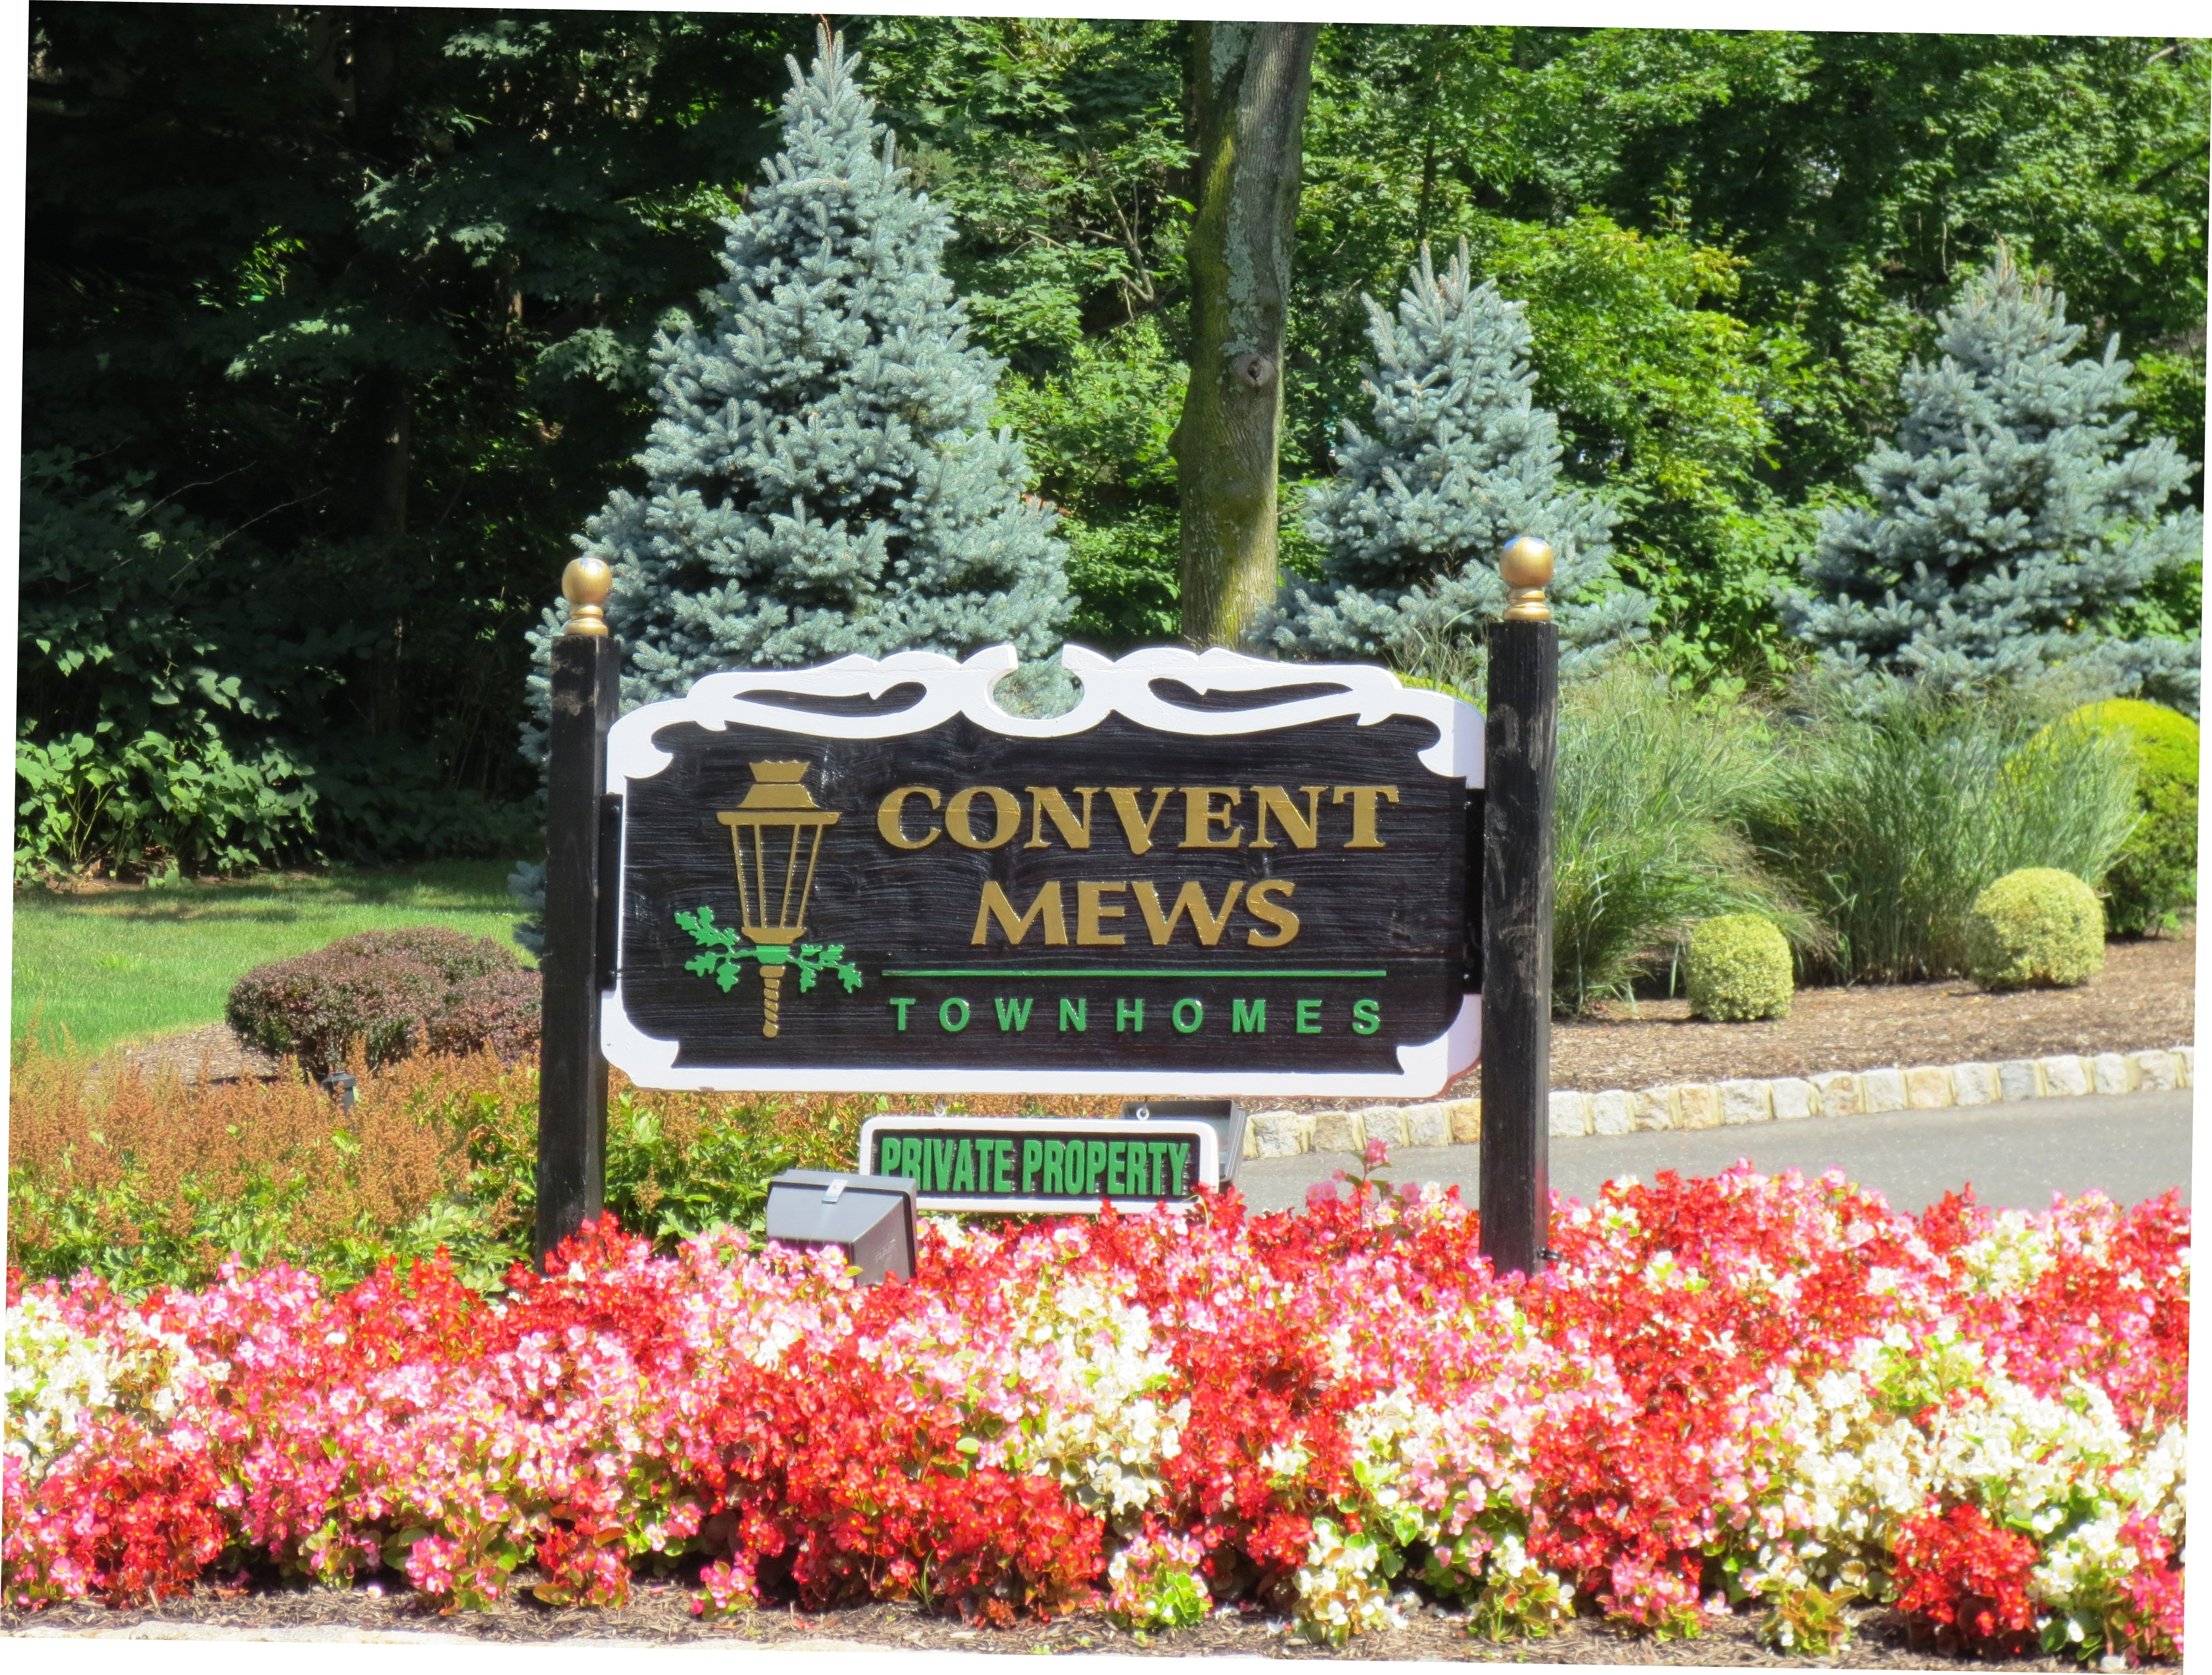 Convent Mews Townhomes in Morristown, NJ 07960